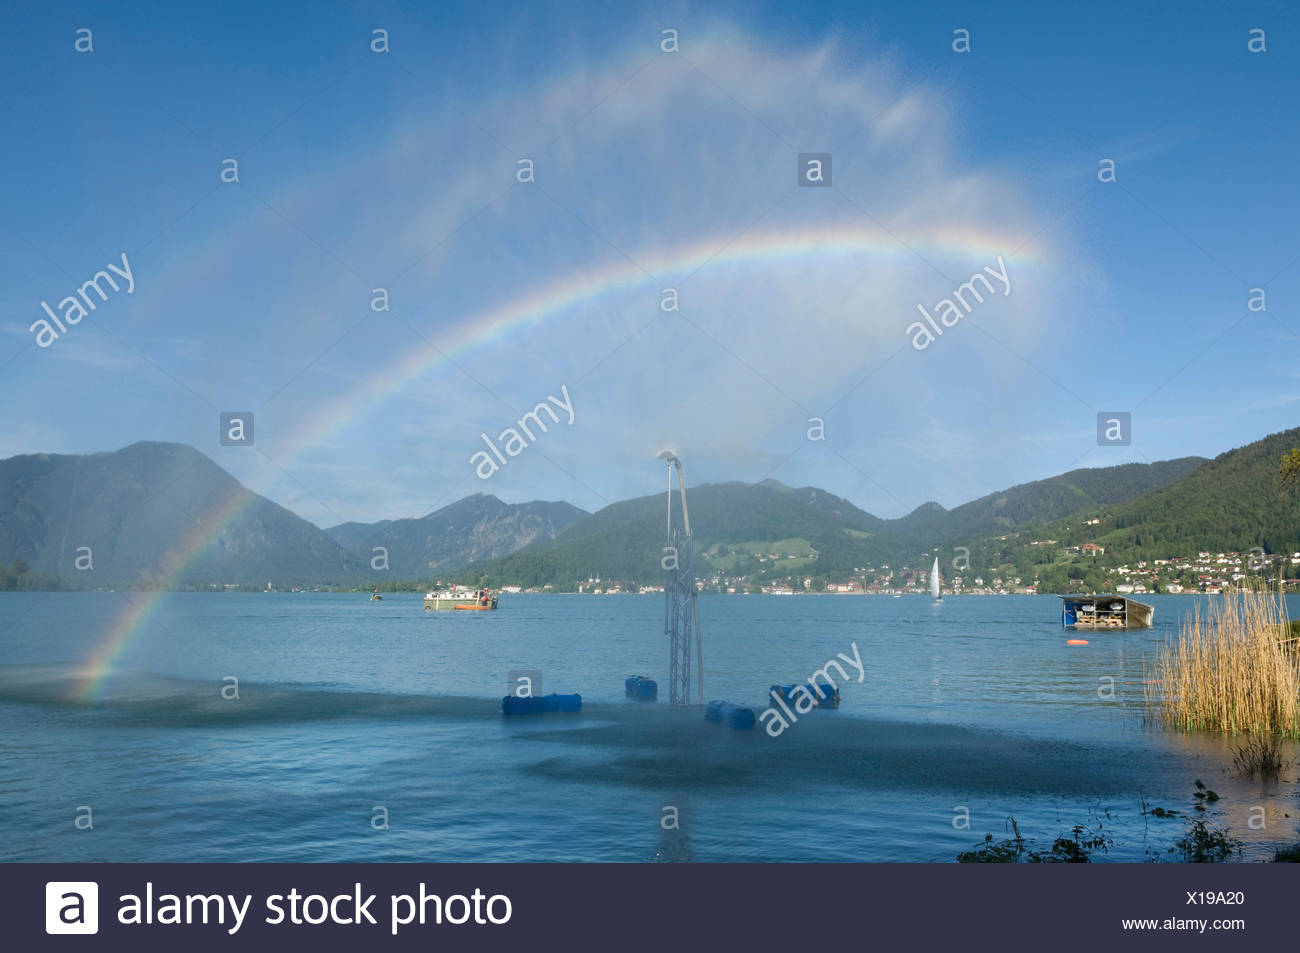 Openair trick fountains, Tegernsee lake, Bavaria, Germany, Europe - Stock Image